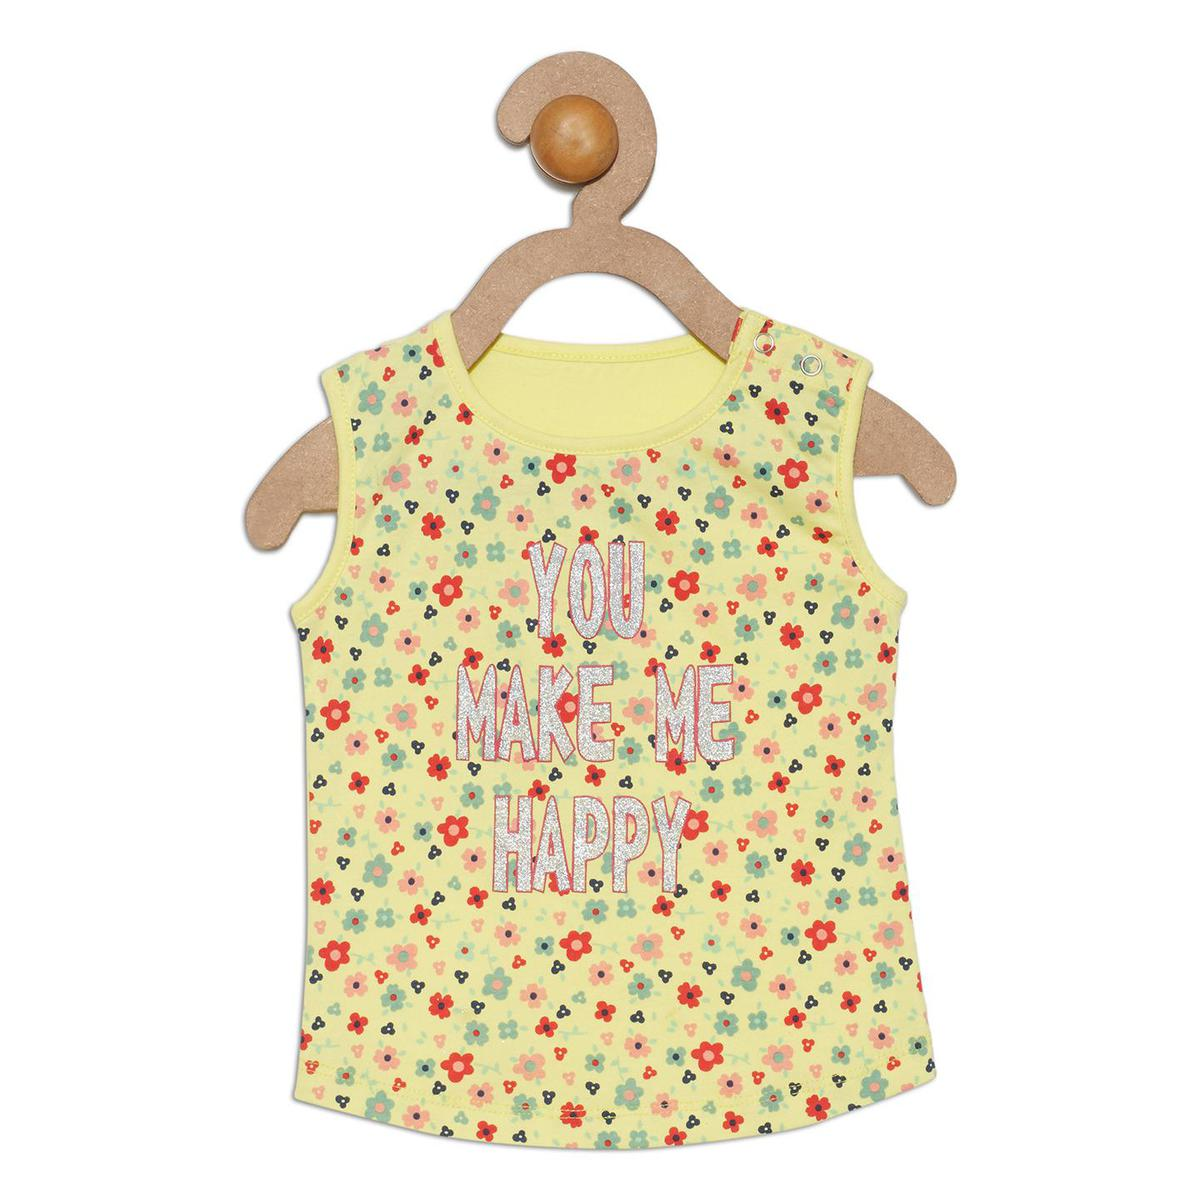 612 League - Yellow Colored You Make Me Happy T-shirts For Baby Girls